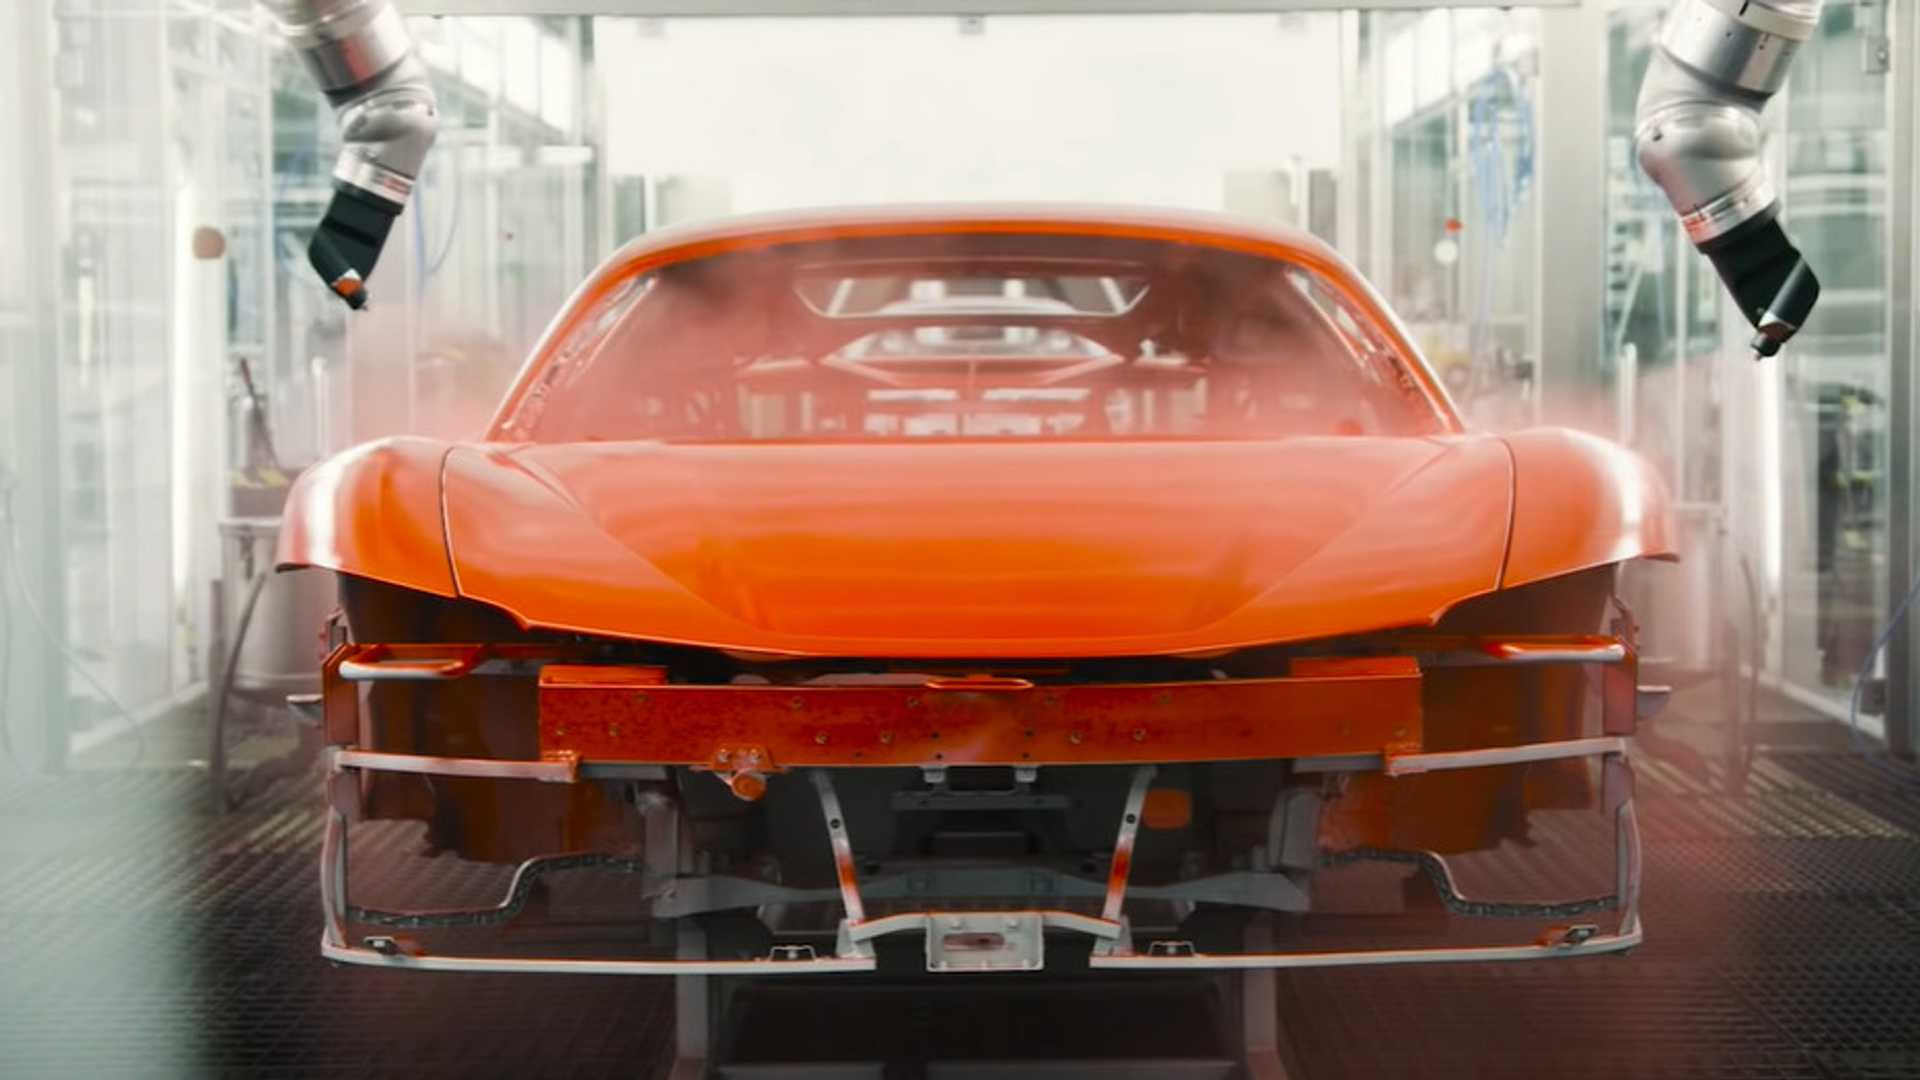 Ferrari Shows What It Takes To Build The Sf90 Stradale